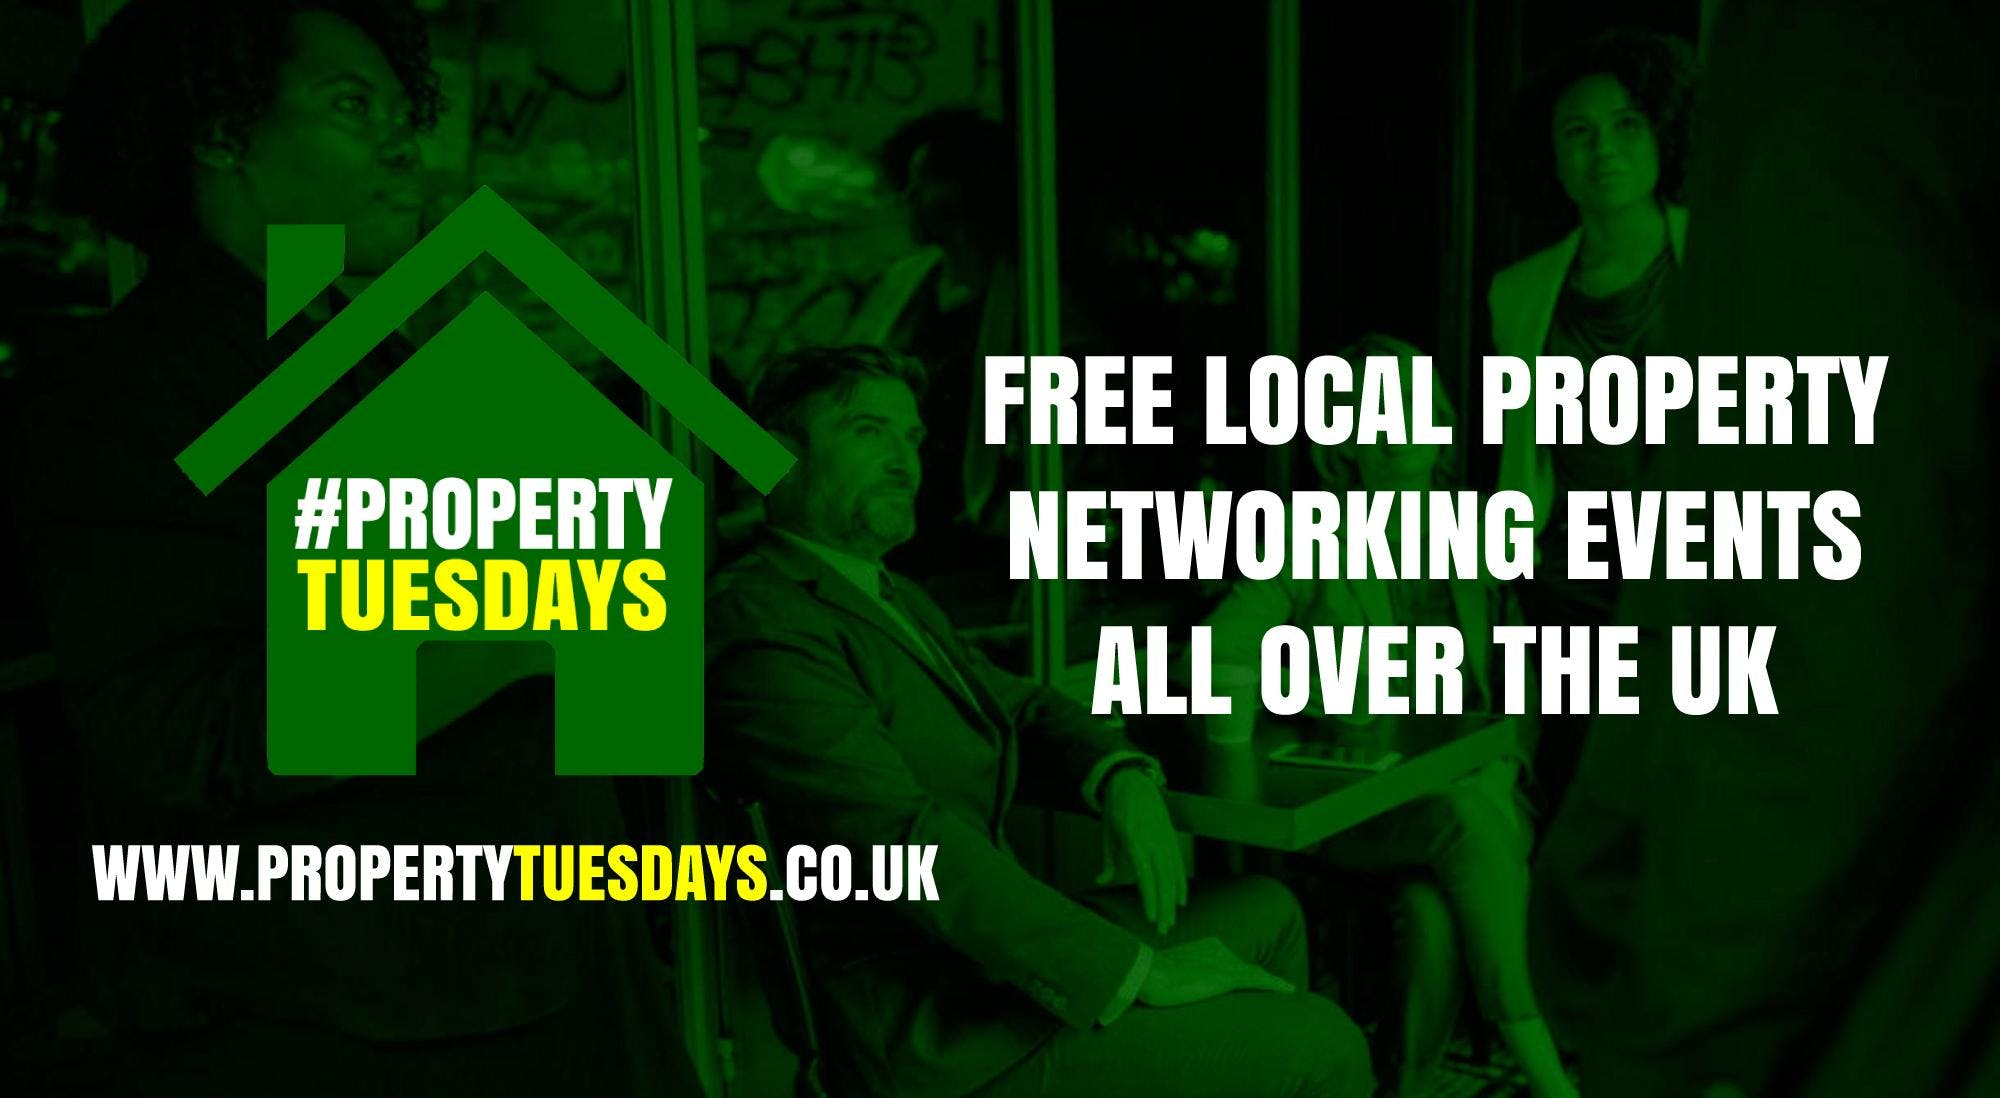 Property Tuesdays! Free property networking event in Eccles